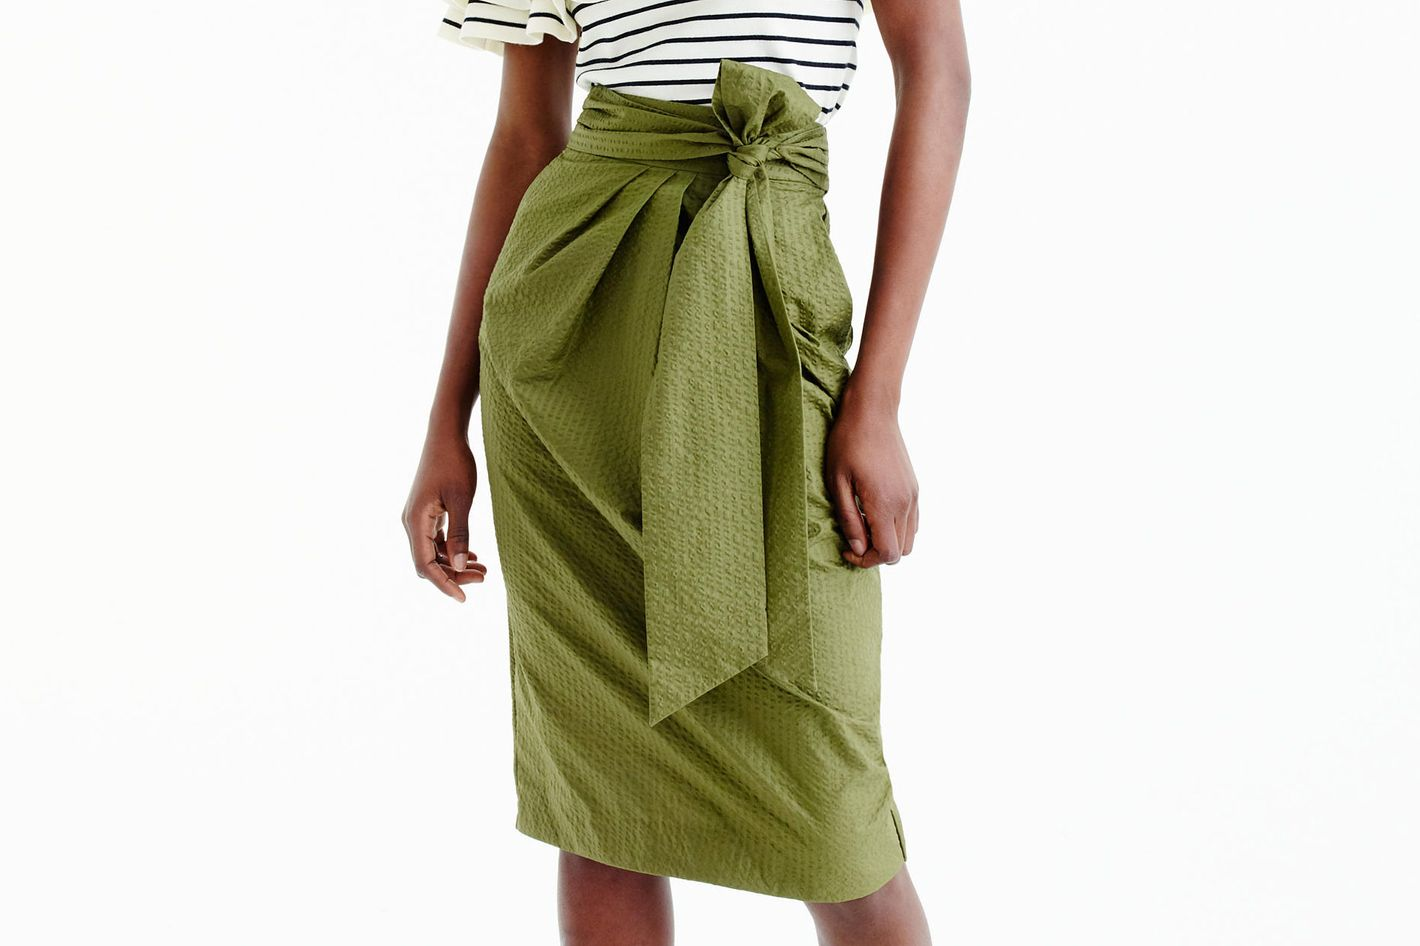 J.Crew Tie-Waist Skirt in Dyed Seersucker